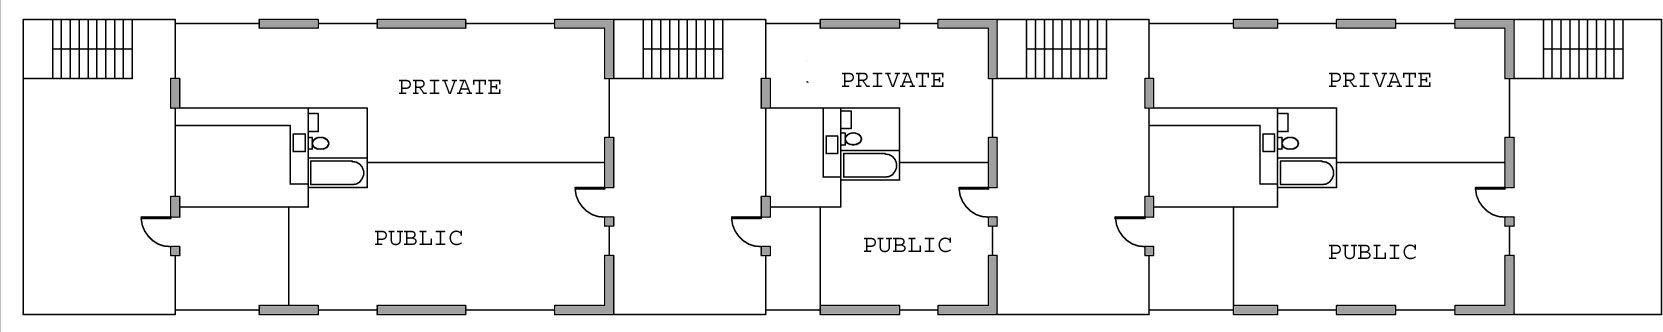 Portfolio created by evelyngtse based on blank Urban infill house plans